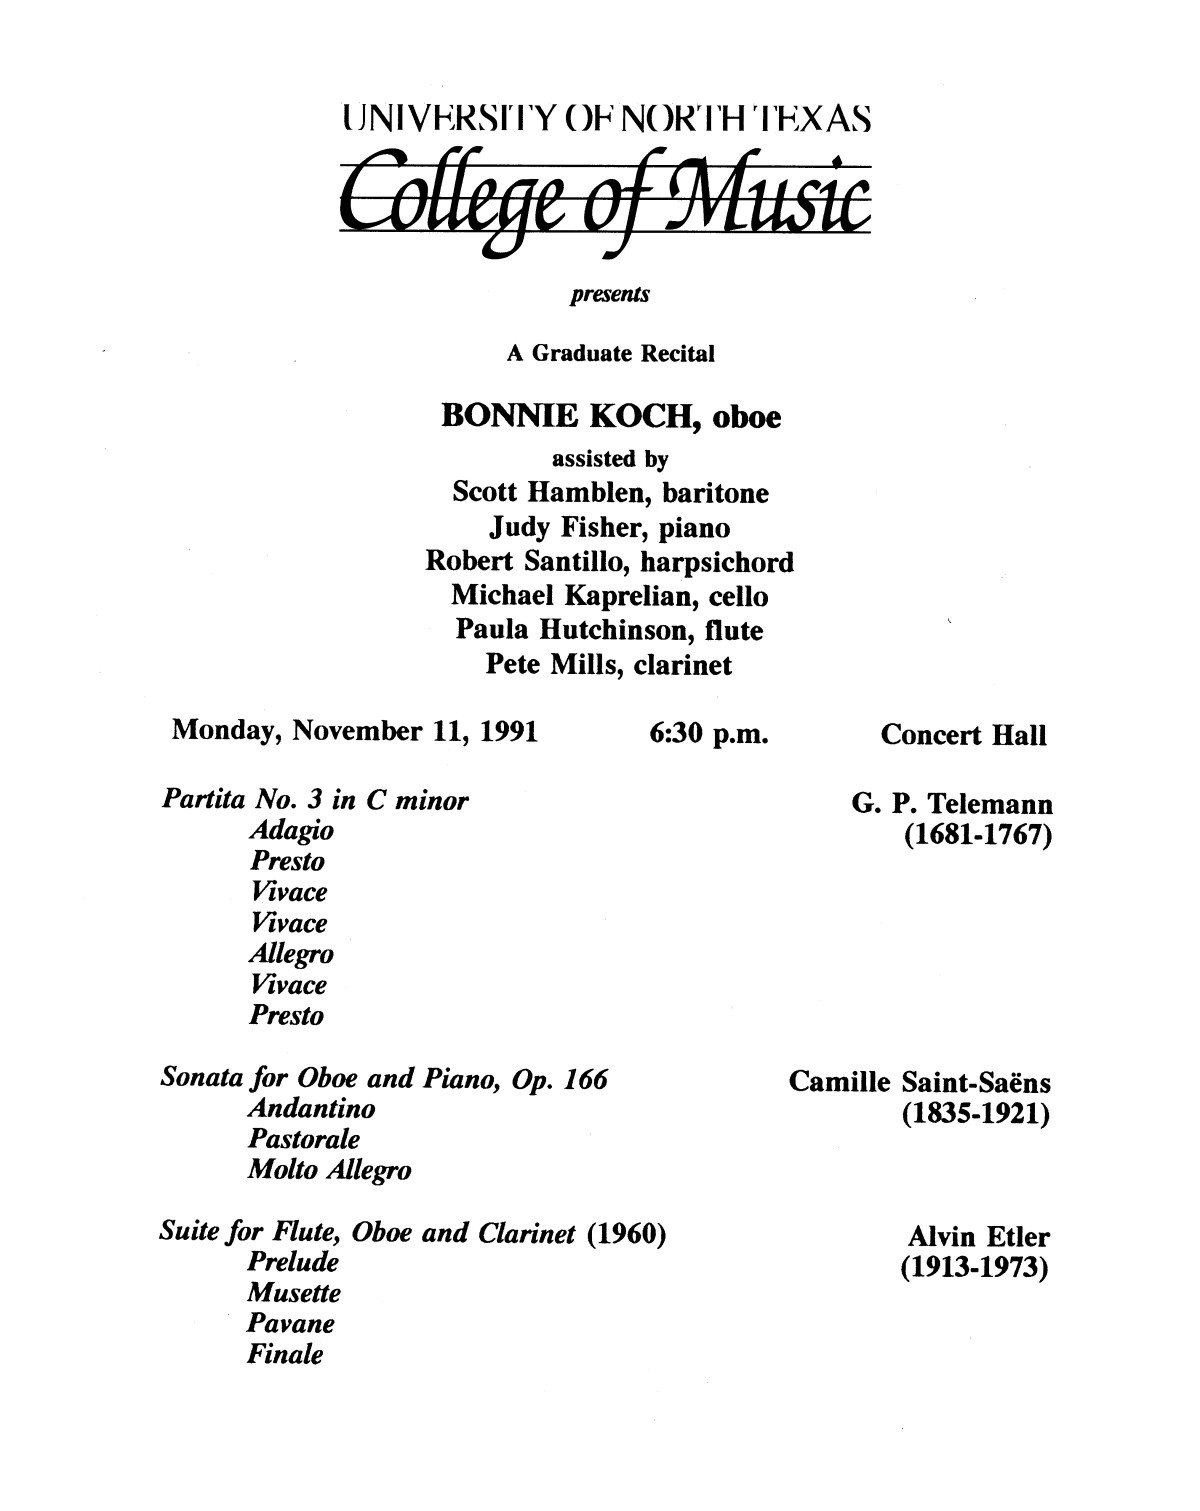 College of Music program book 1991-1992 Student Performances Vol. 2                                                                                                      [Sequence #]: 48 of 310